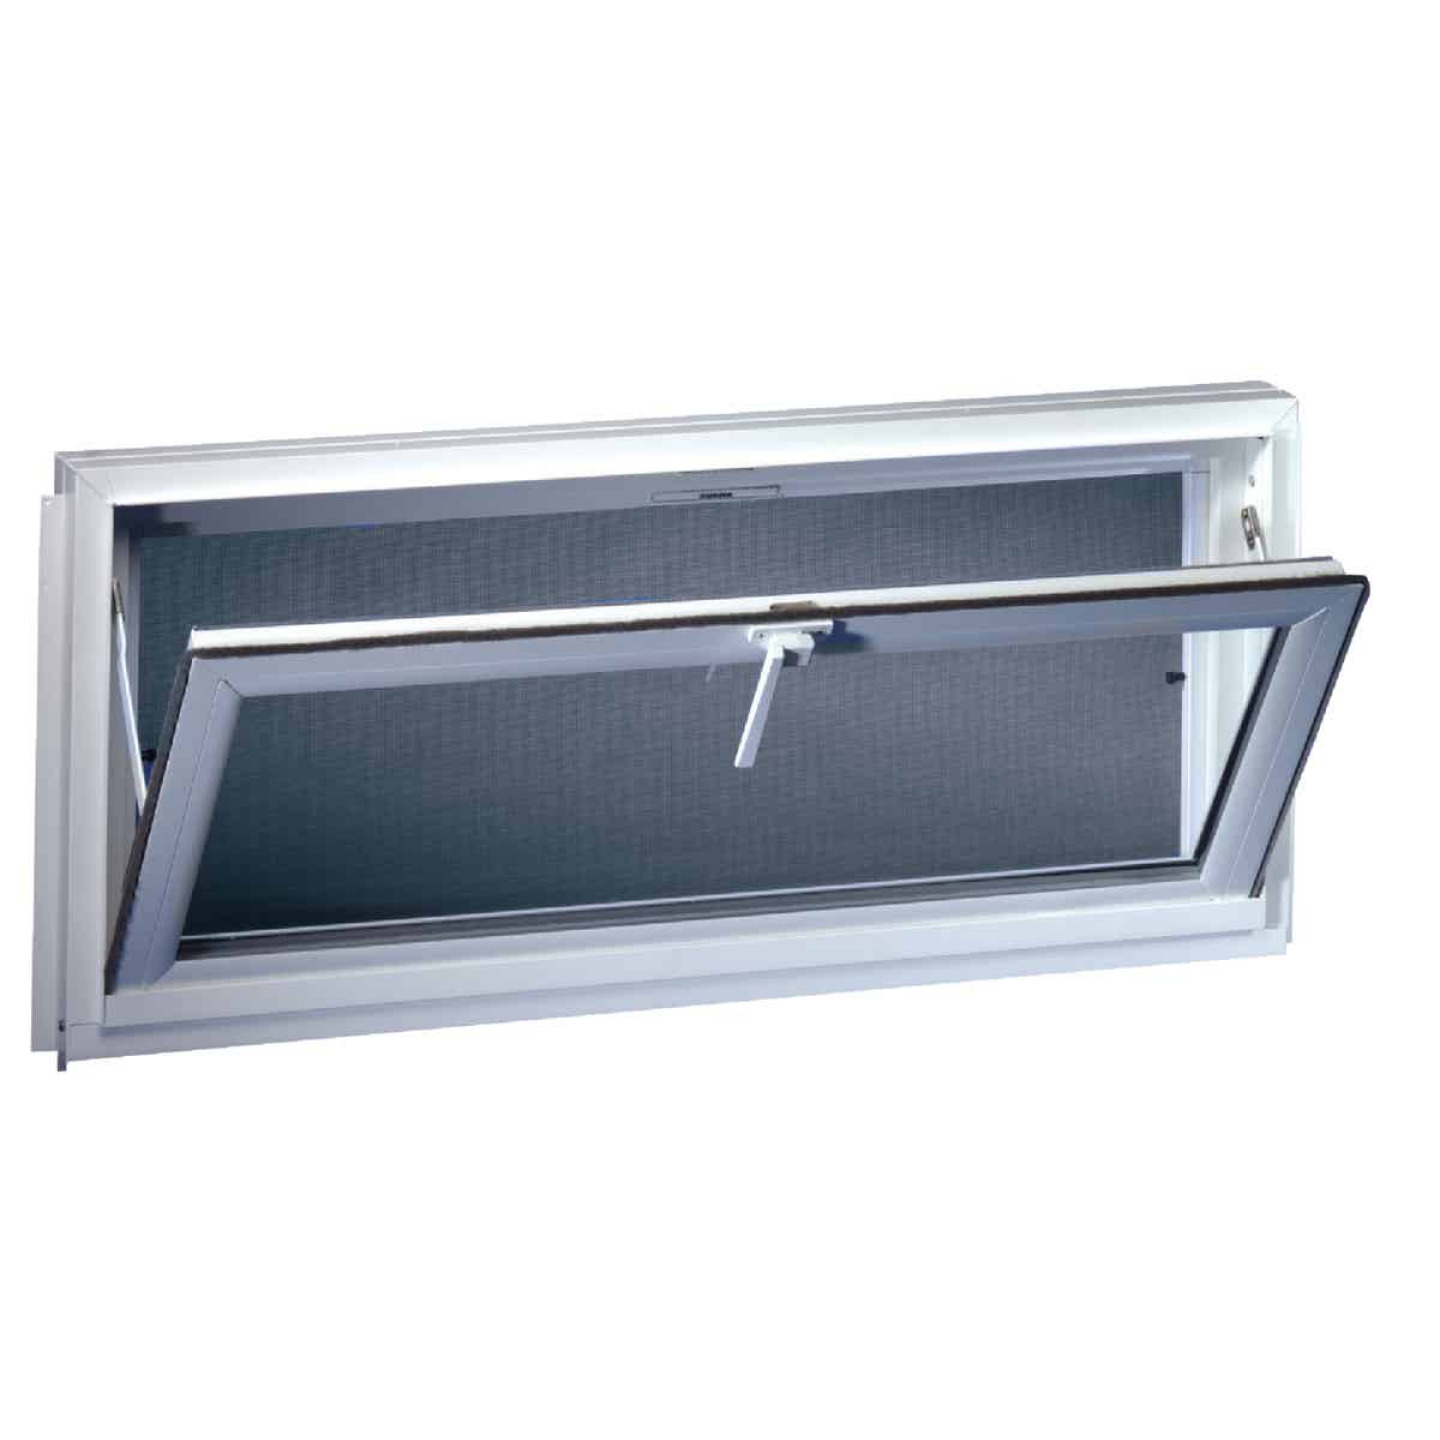 Northview Hemlock Hopper 32 In. W x 15-1/4 In. H White PVC Basement Window Image 1